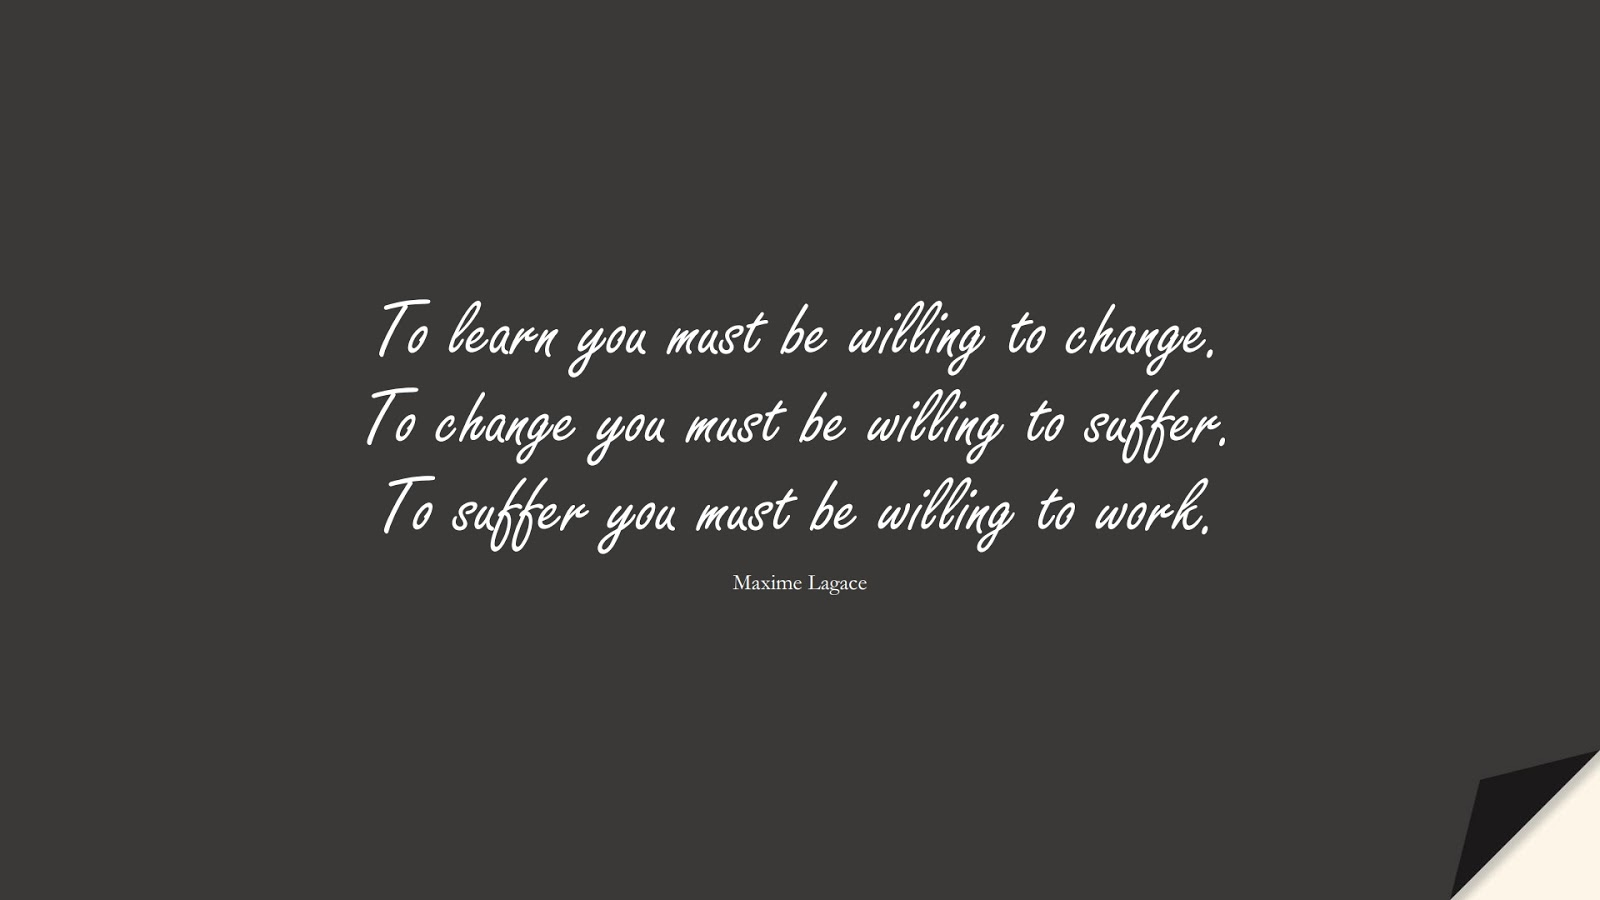 To learn you must be willing to change. To change you must be willing to suffer. To suffer you must be willing to work. (Maxime Lagace);  #HardWorkQuotes